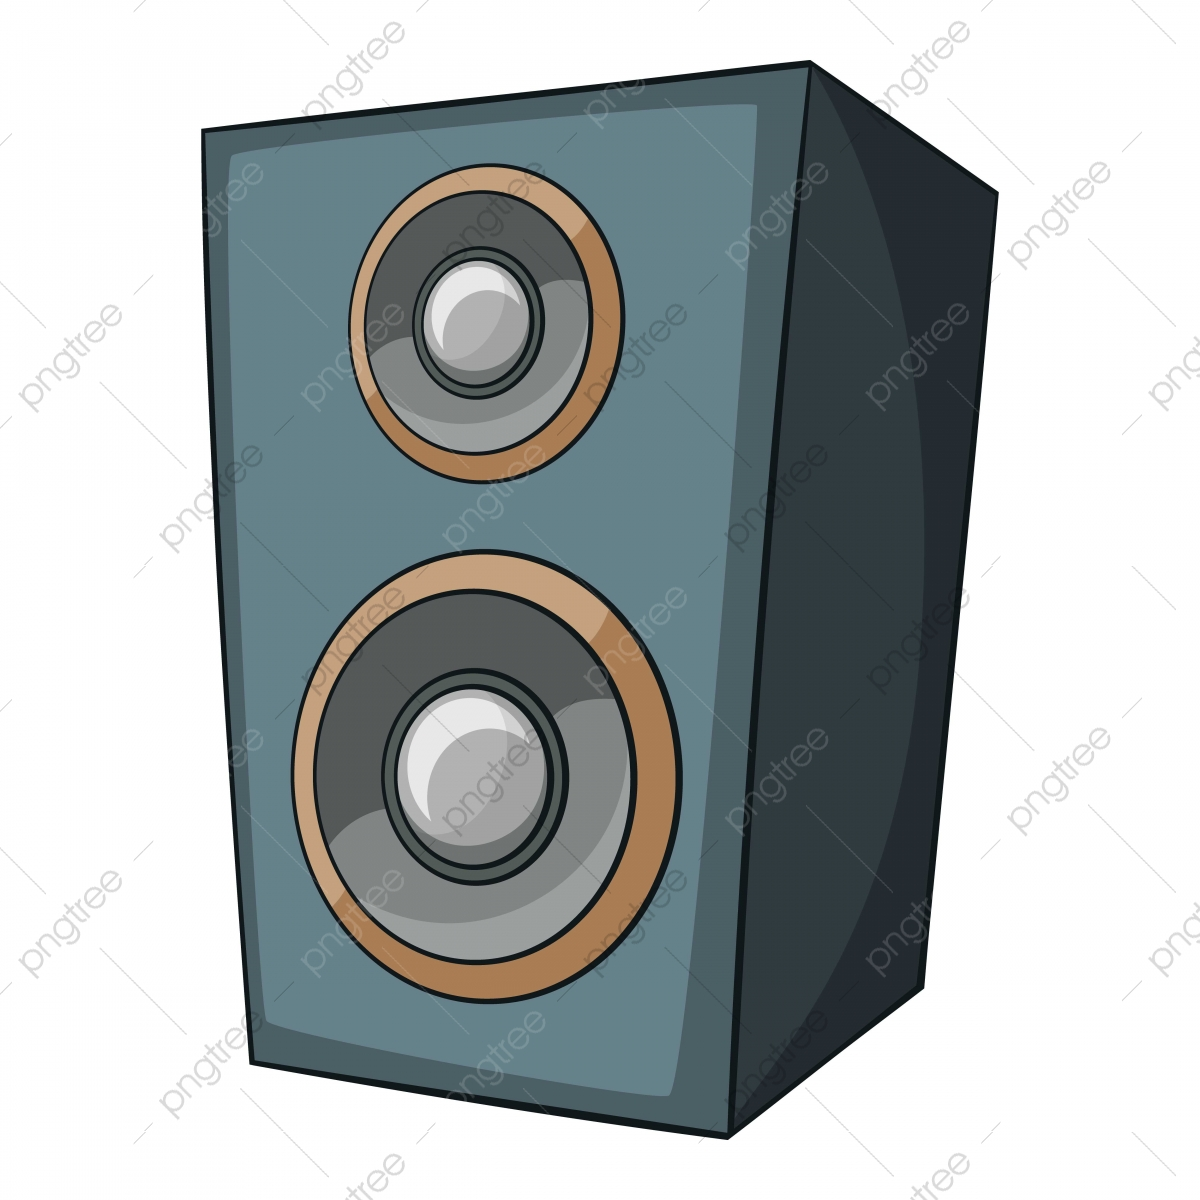 speaker png images vector and psd files free download on pngtree https pngtree com freepng music speaker icon cartoon style 5249456 html